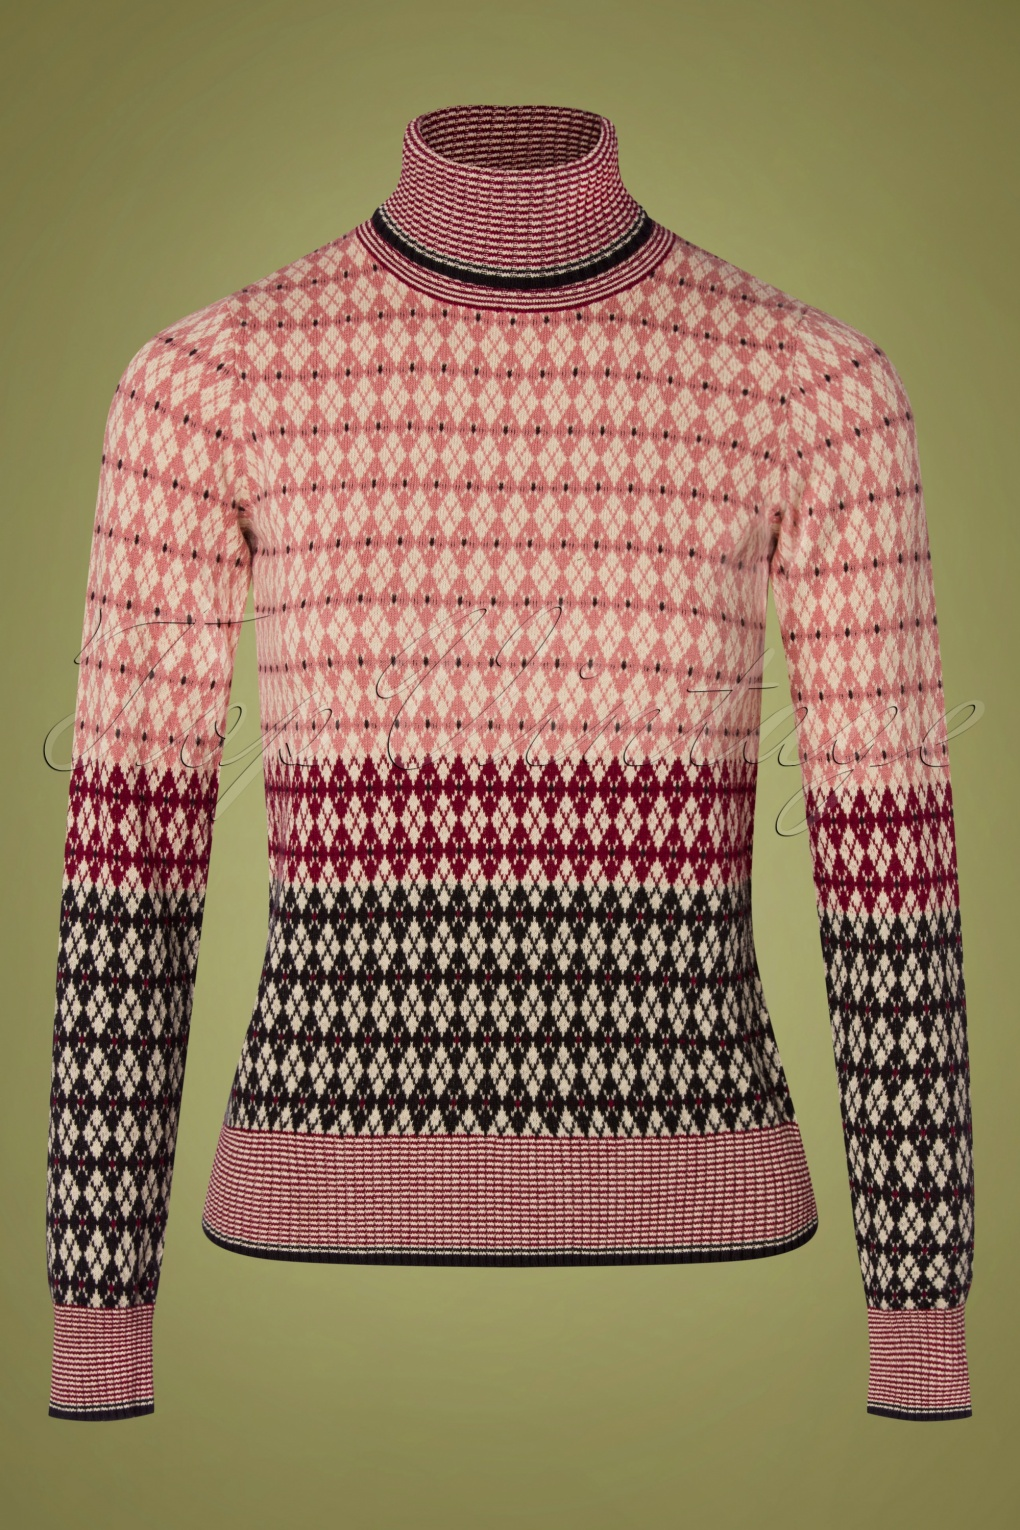 Vintage Sweaters, Retro Sweaters & Cardigan 70s Preppy Rollneck Sweater in Dusty Rose £68.15 AT vintagedancer.com